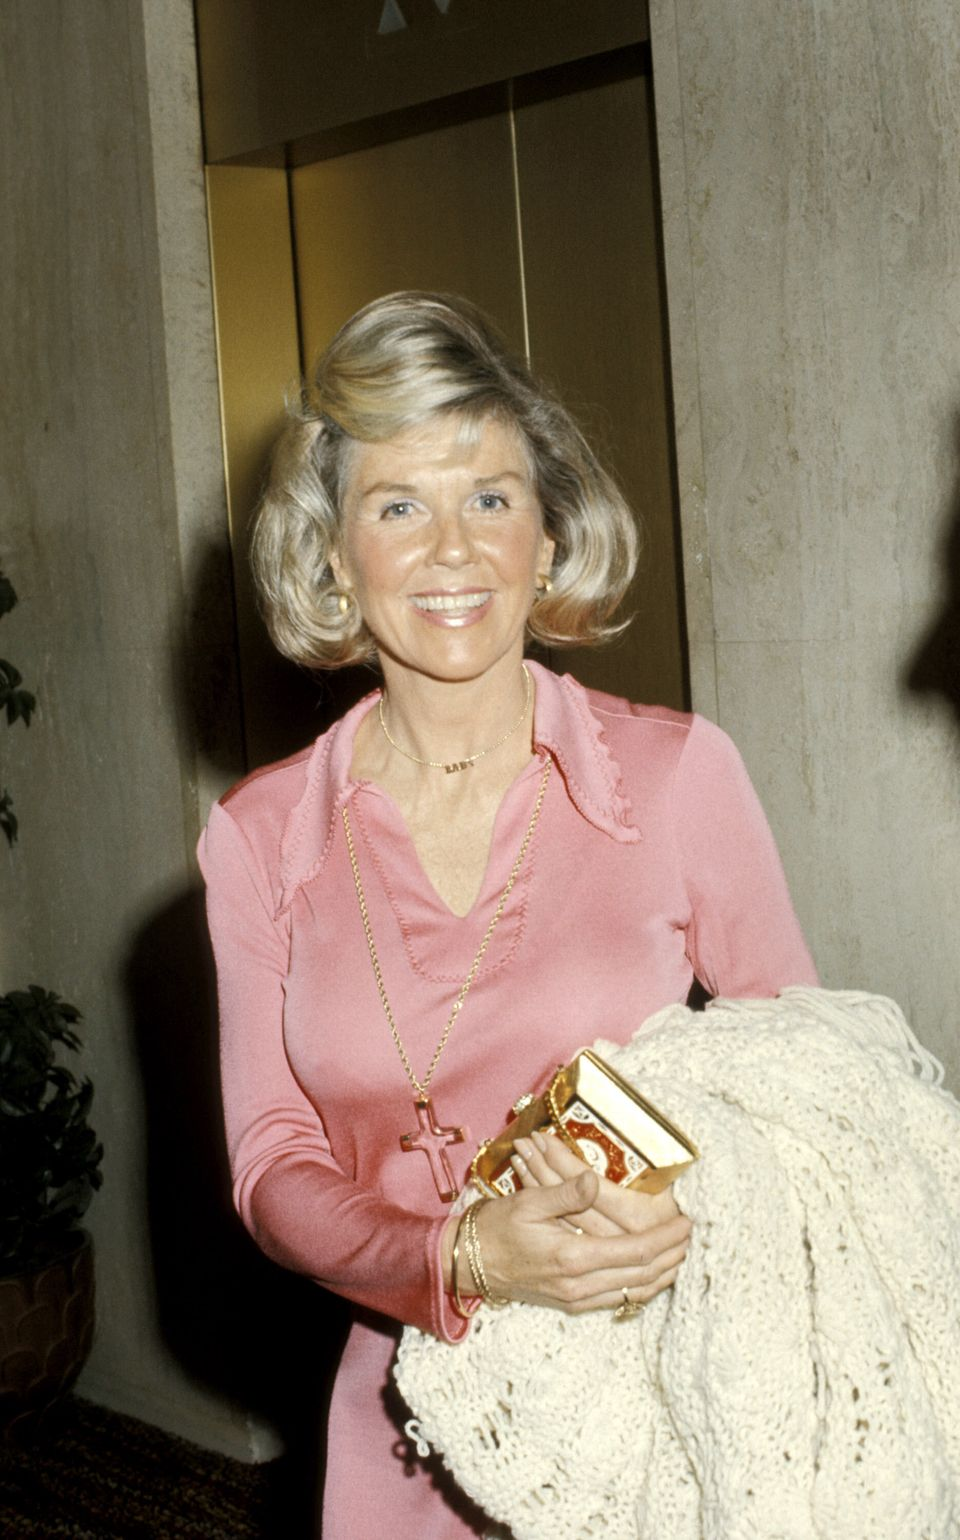 Westlake Legal Group 5cd97ec92100005900d0664e A Look Back At Doris Day's Life And Career In Photos